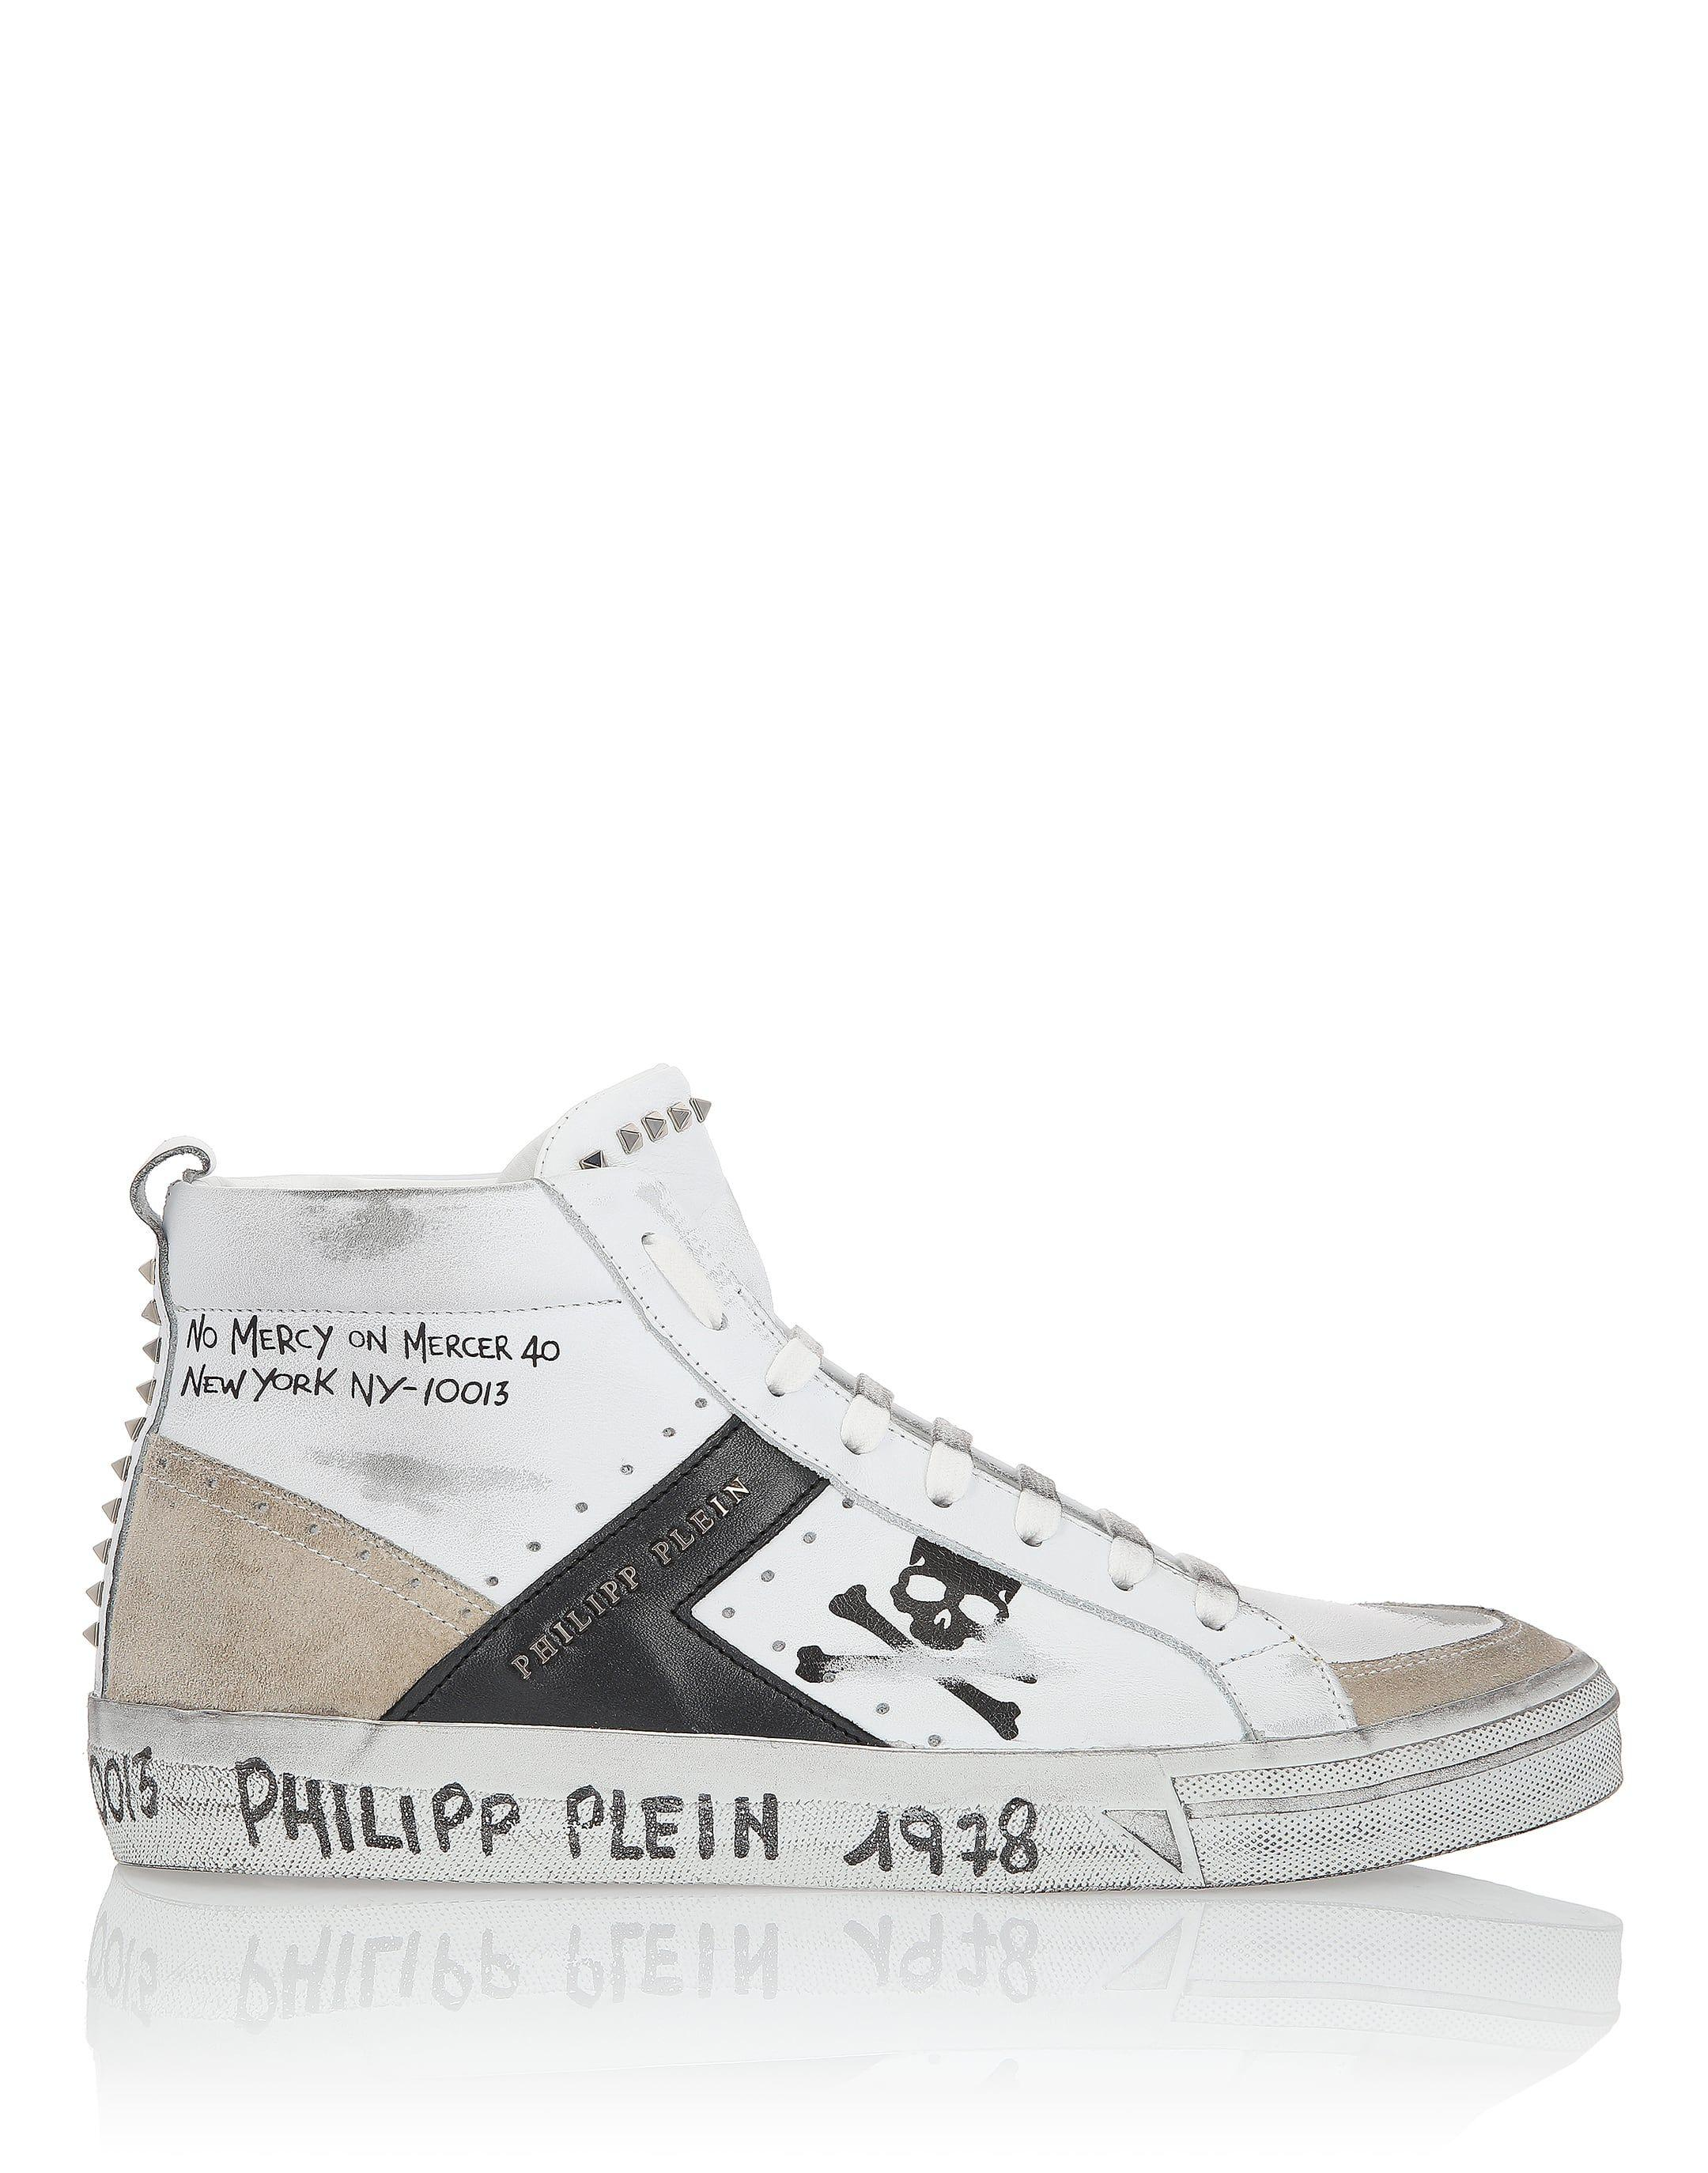 Philipp Mm Men Plein White For Lyst Top Mid In Sneakers dR4vq